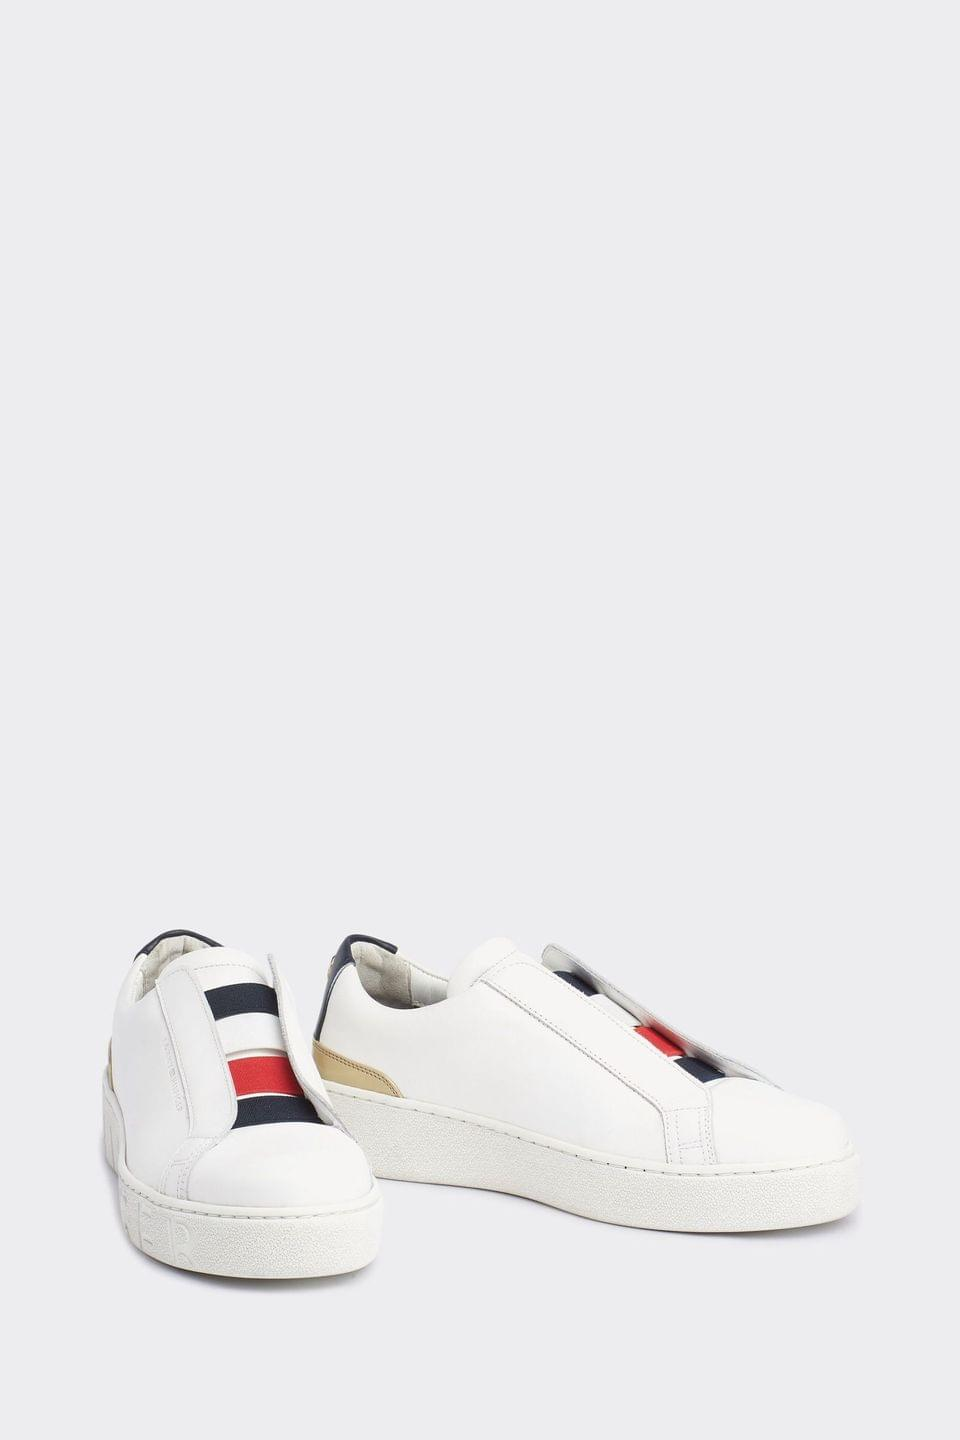 Women's Tommy Hilfiger White Chunky Sole Trainers